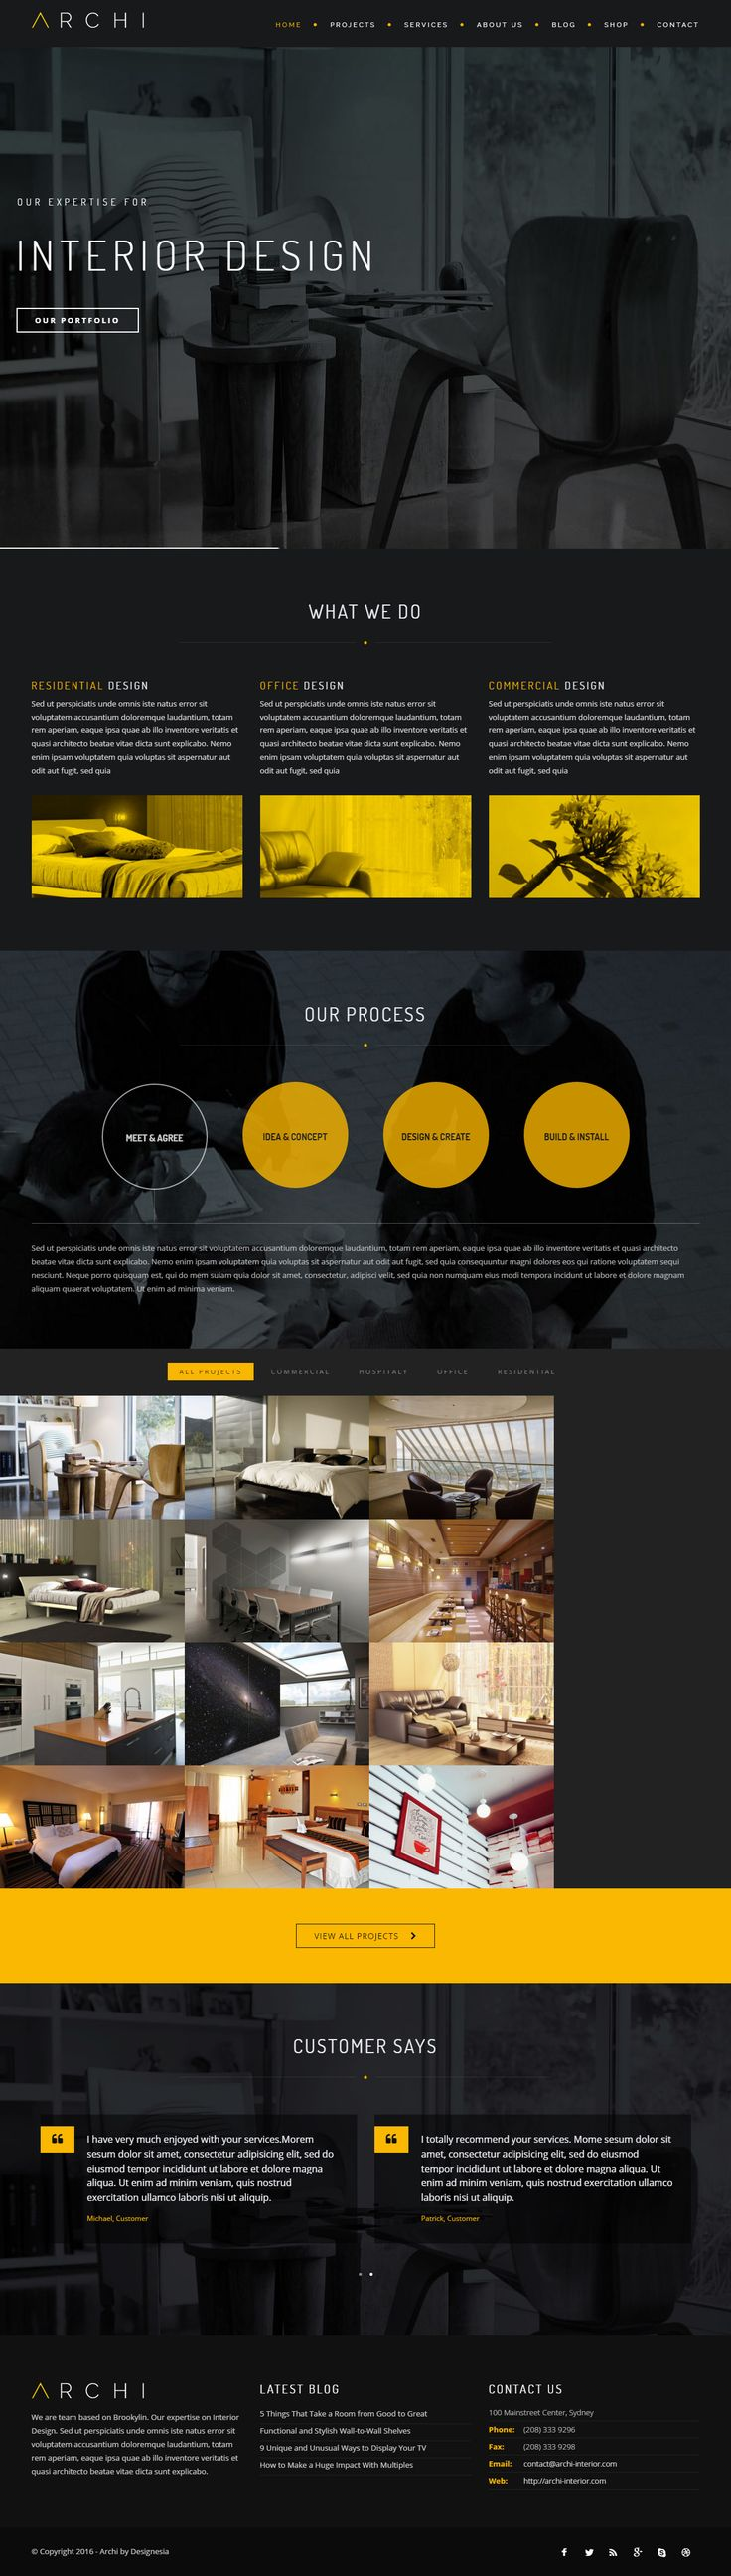 Archi is Premium Responsive Retina Parallax #Drupal #InteriorDesign Theme. If you like this #OnePage Theme visit our handpicked list of best interior design website templates at: http://www.responsivemiracle.com/best-drupal-interior-design-theme/